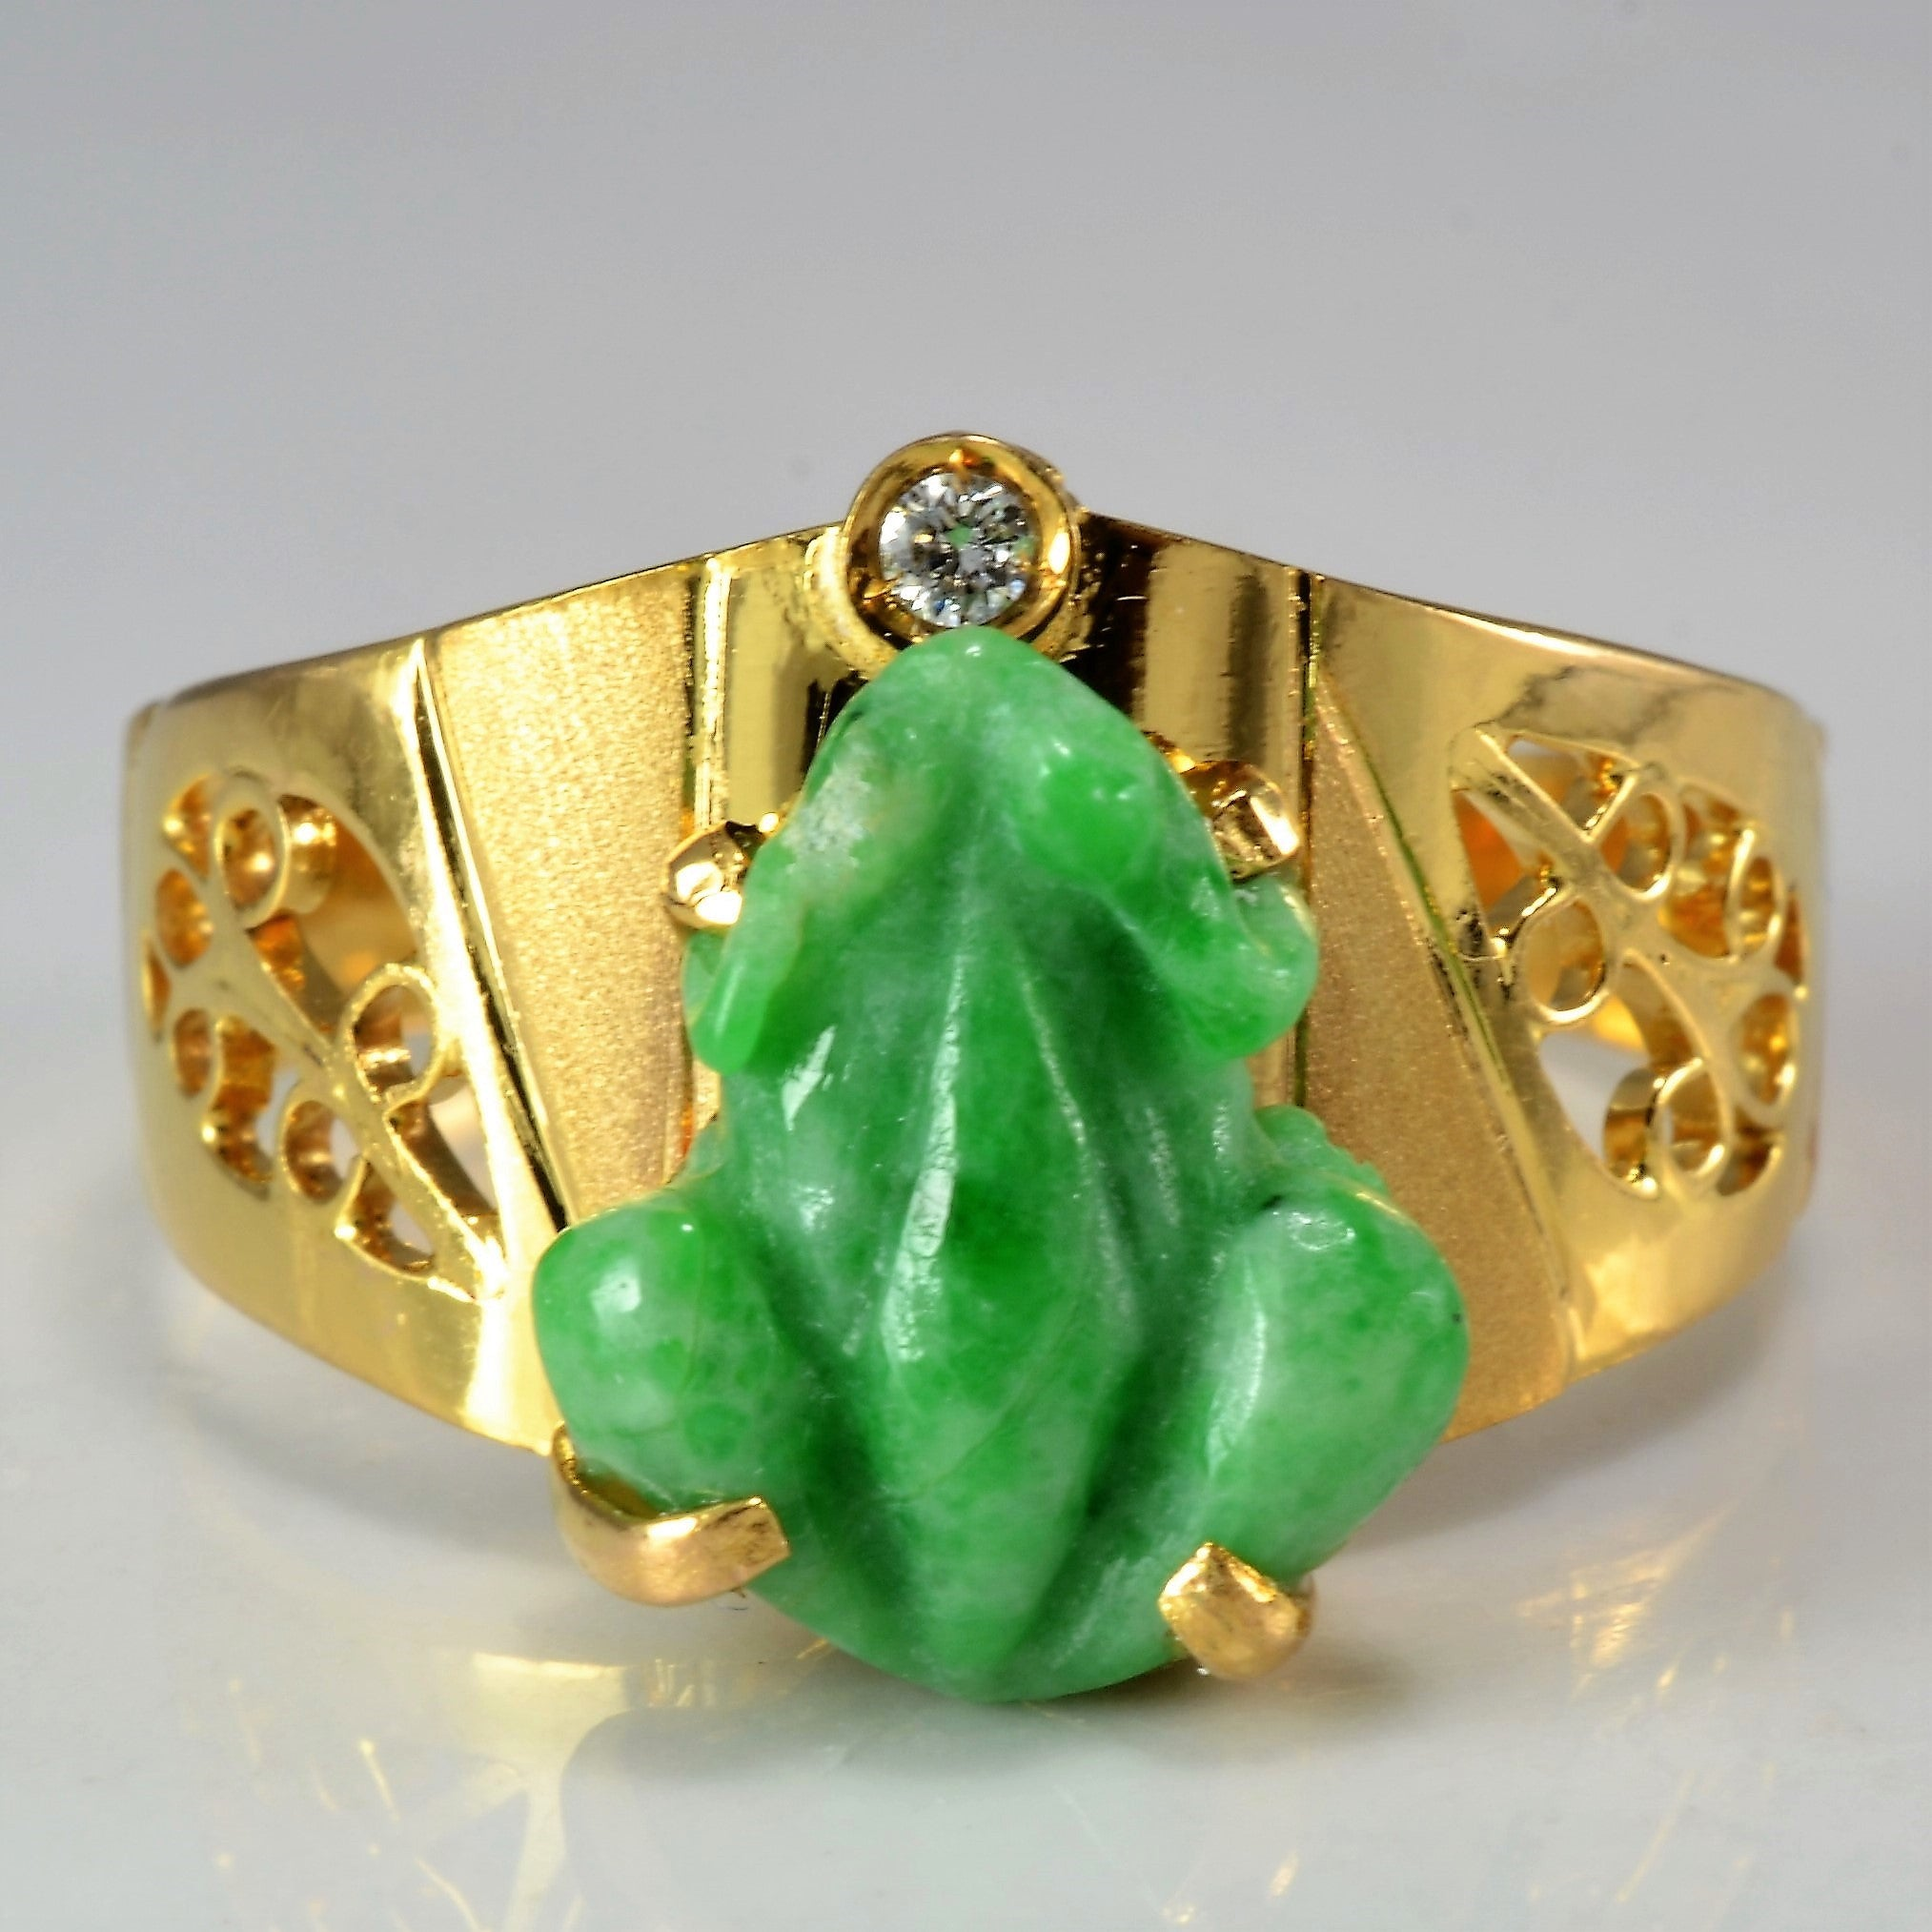 Diamond & Jade Frog Ring | SZ 8.75 |